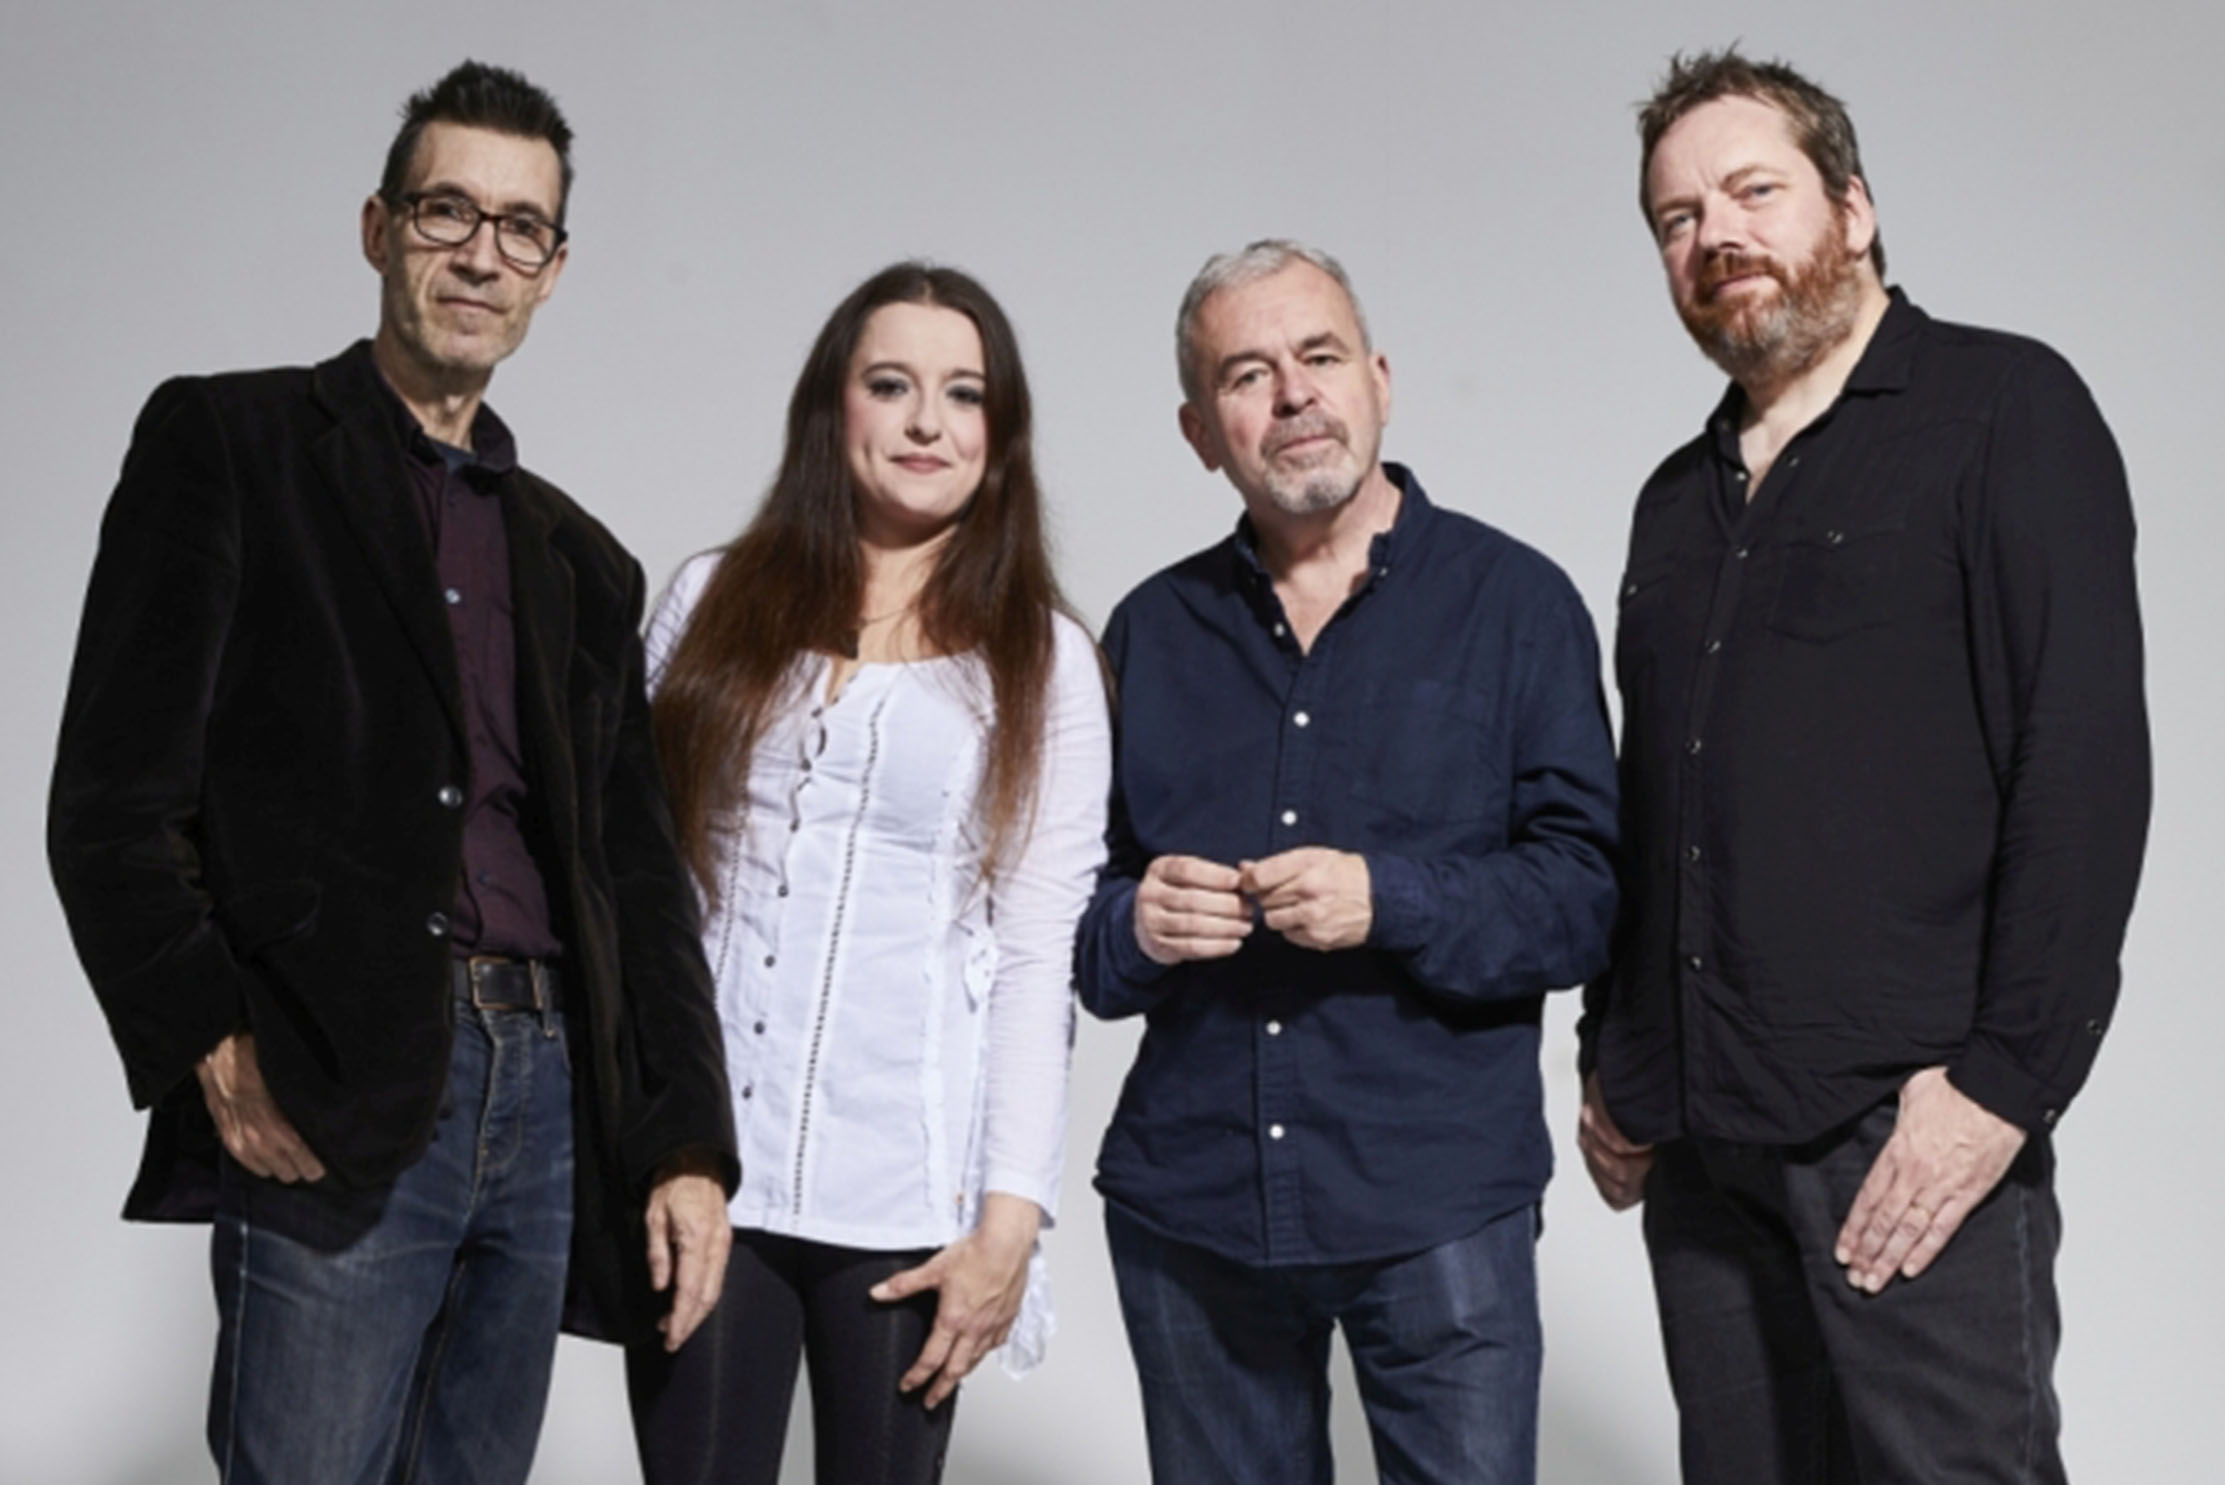 BN1 speaks to Dave Hemingway, as his new band, Sunbirds, release their debut album, Cool To Be Kind